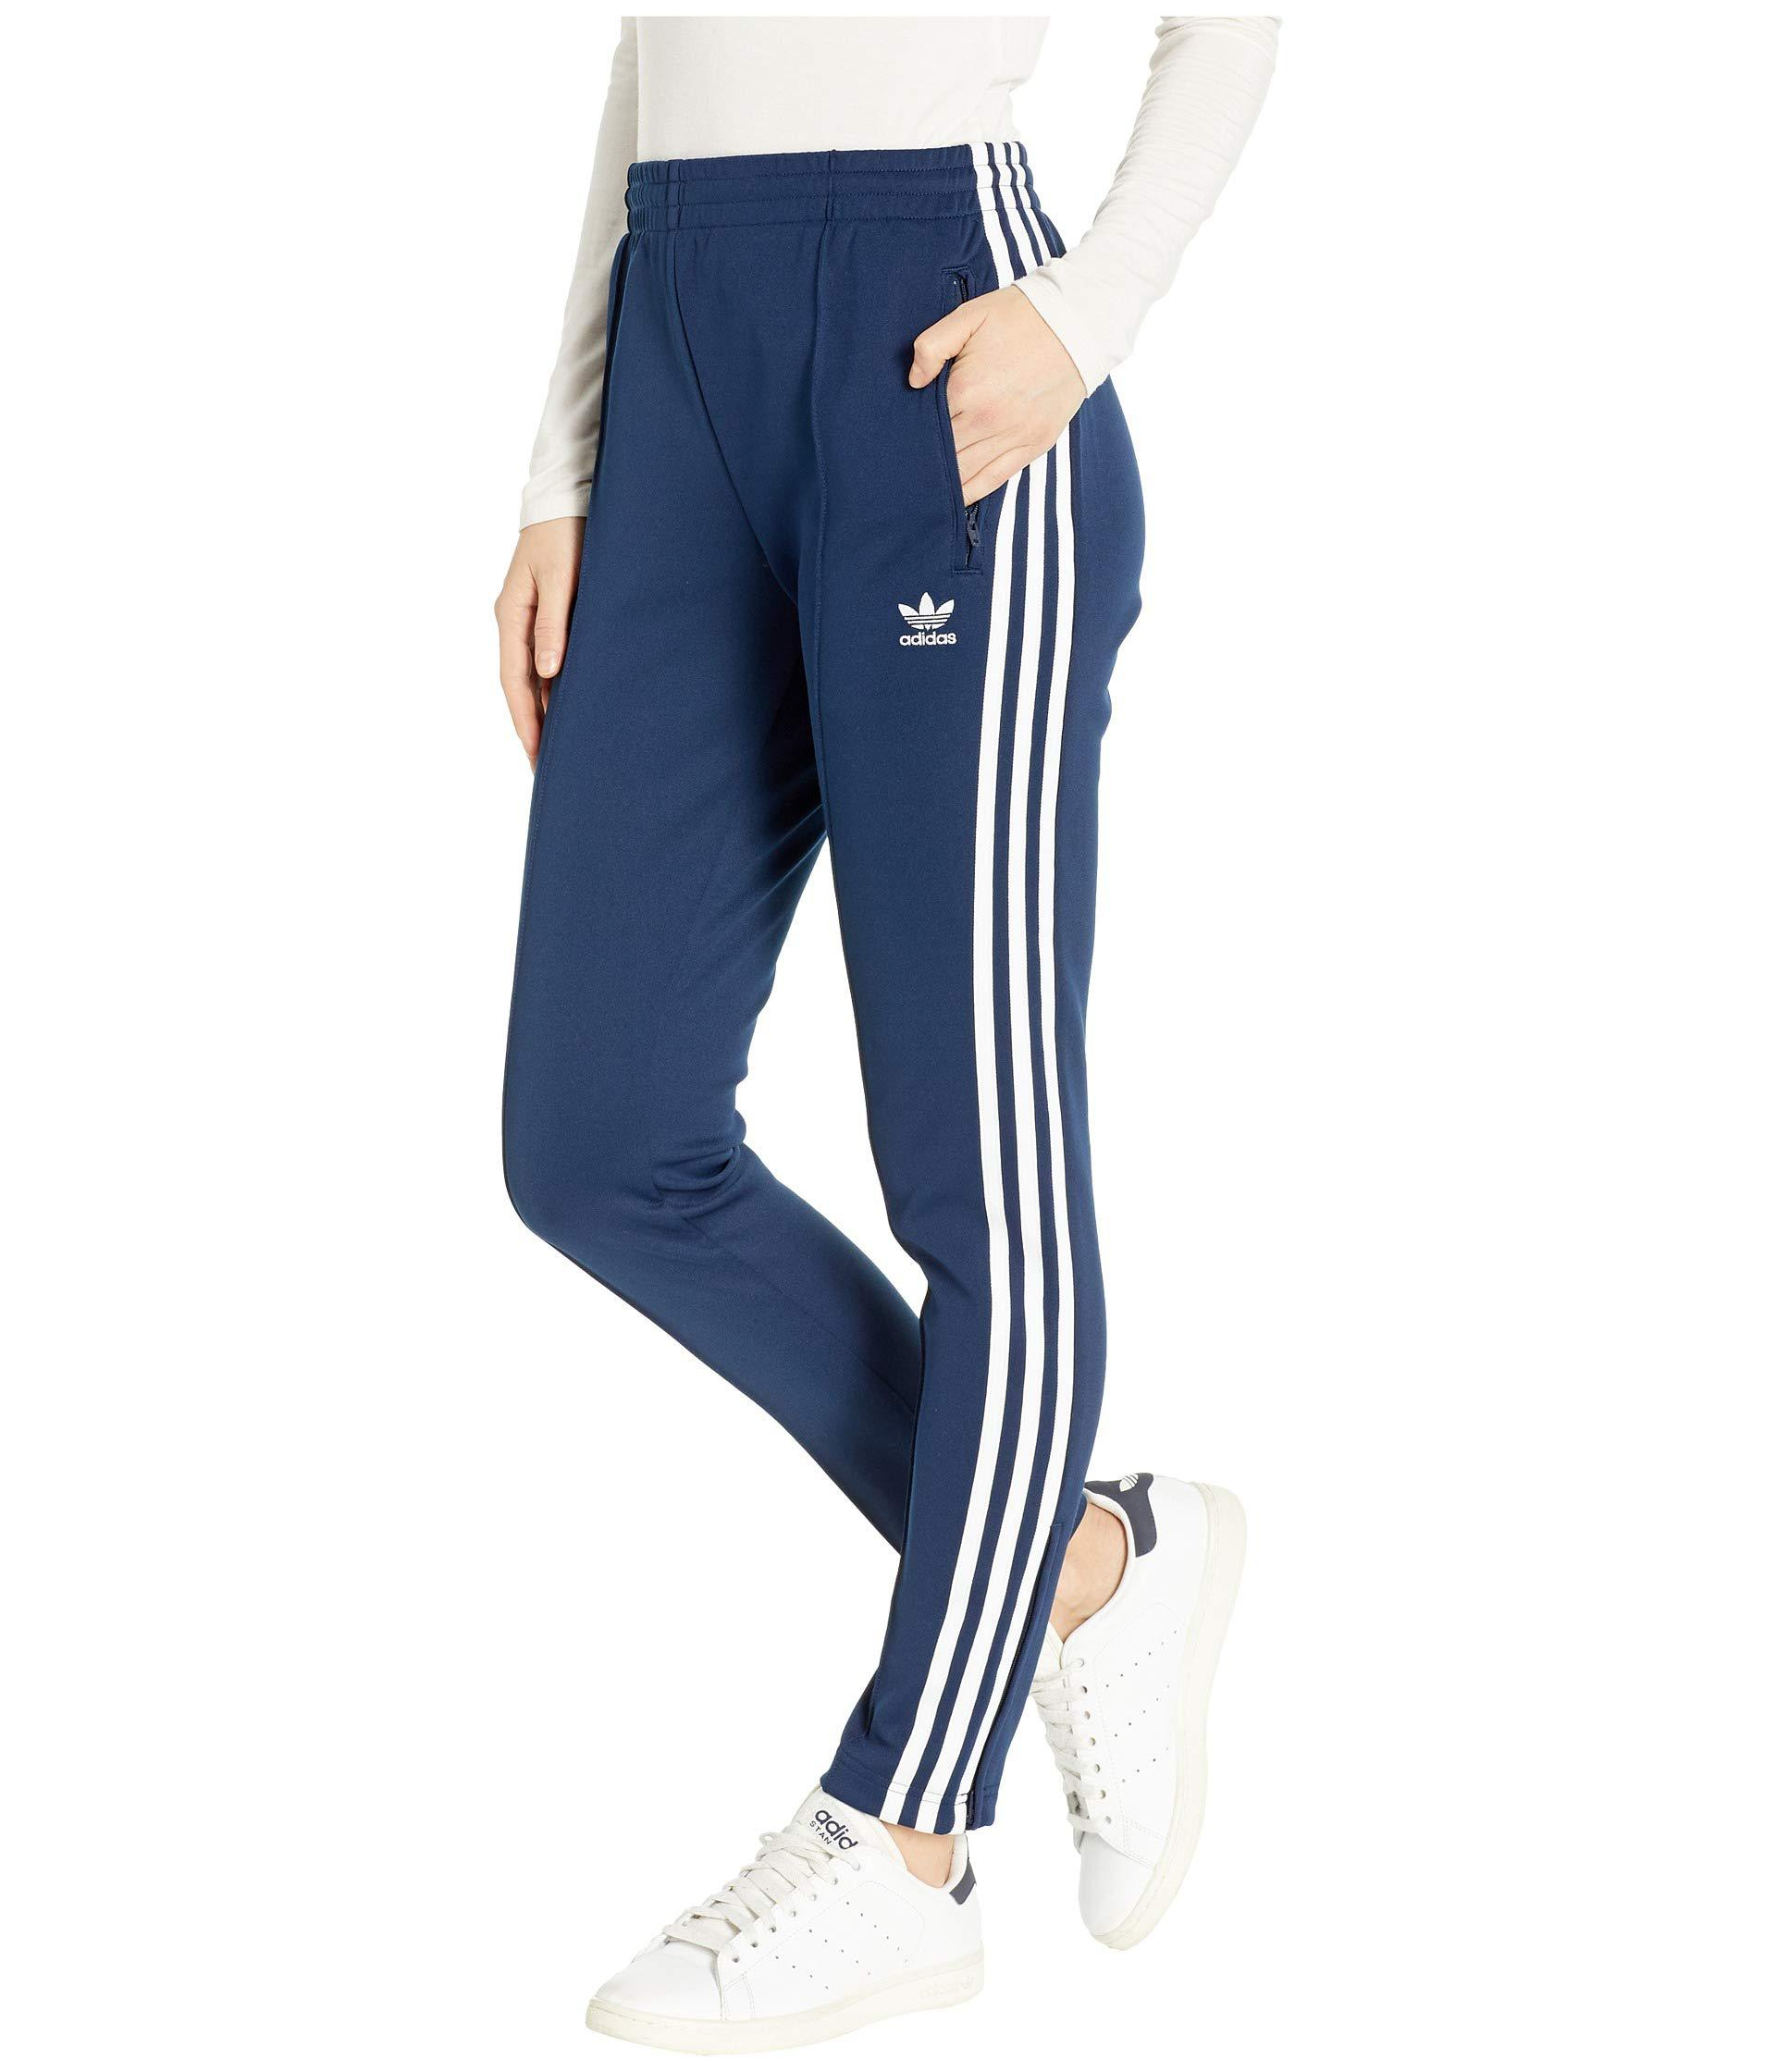 6906f065e81 adidas Originals Sst Track Pants (dark Blue) Women's Workout in Blue ...